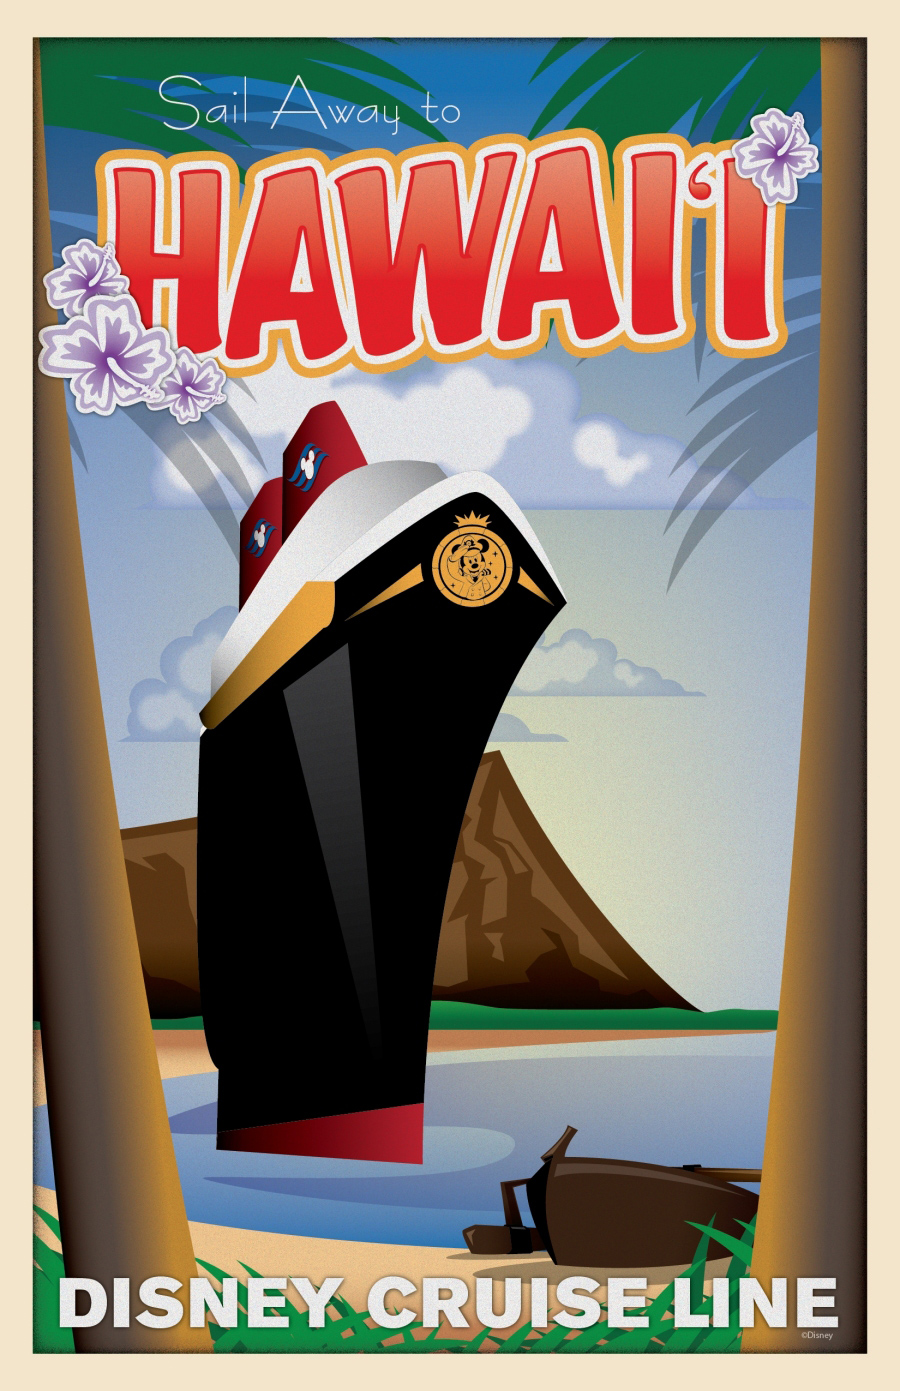 Disney Cruise Line Doubles The Aloha With Second Hawaiian Cruise 171 Disney Parks Blog